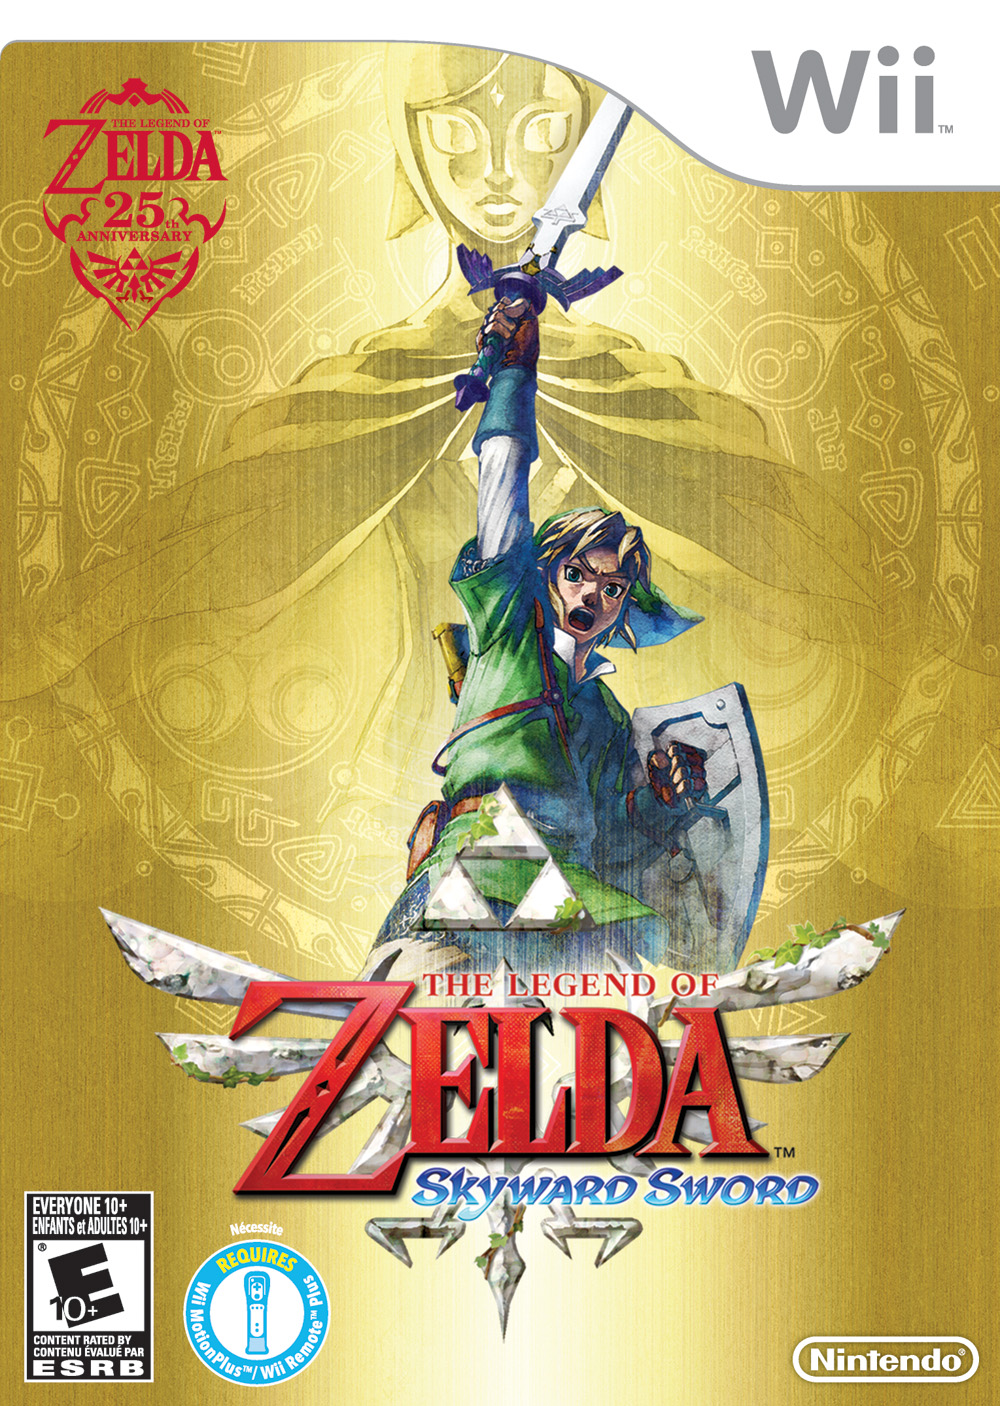 Skyward_Sword_US_Box_Art.jpg